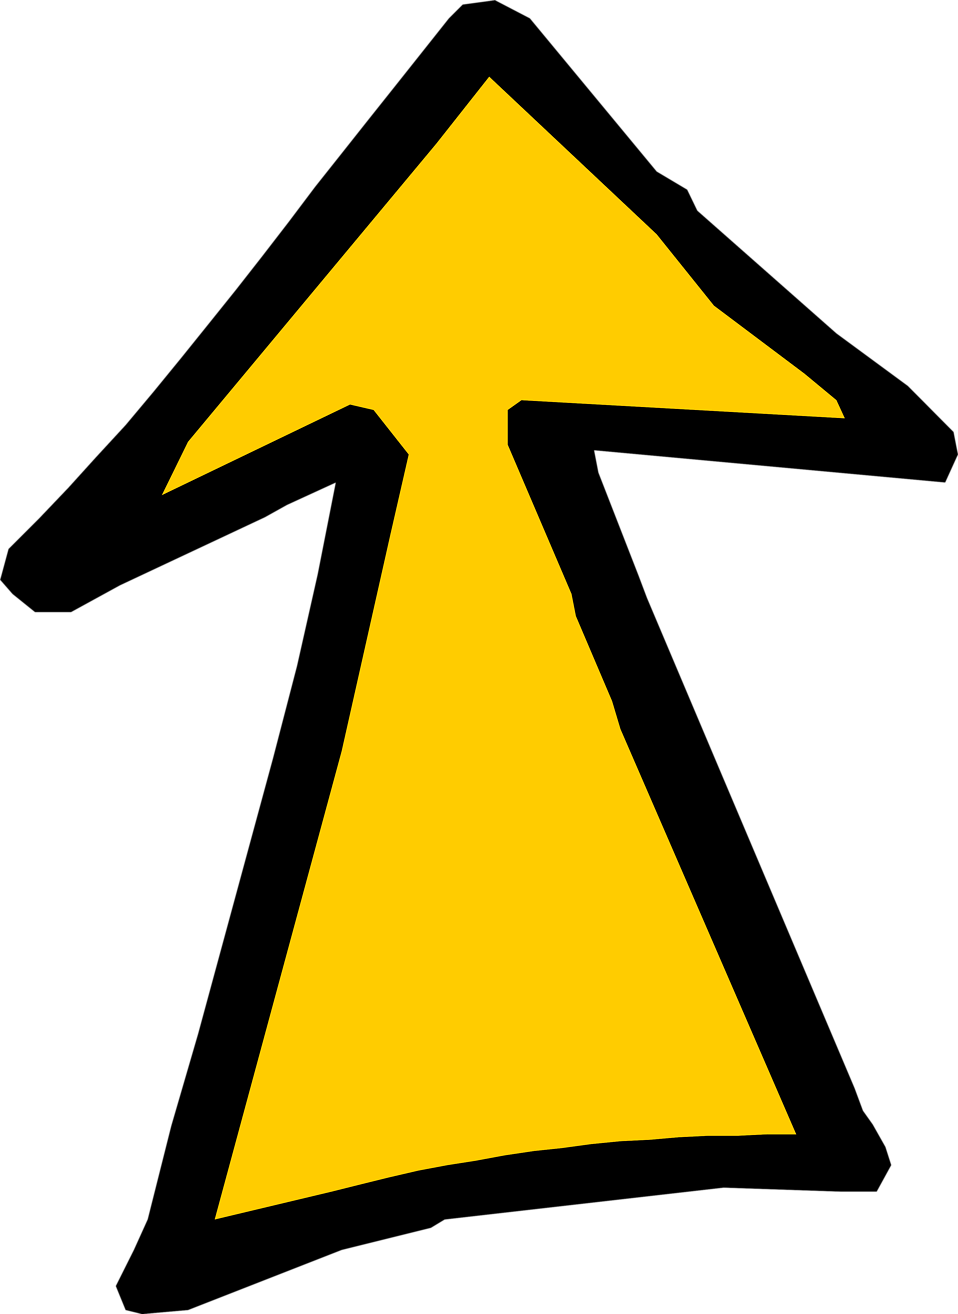 clipart yellow arrow - photo #39